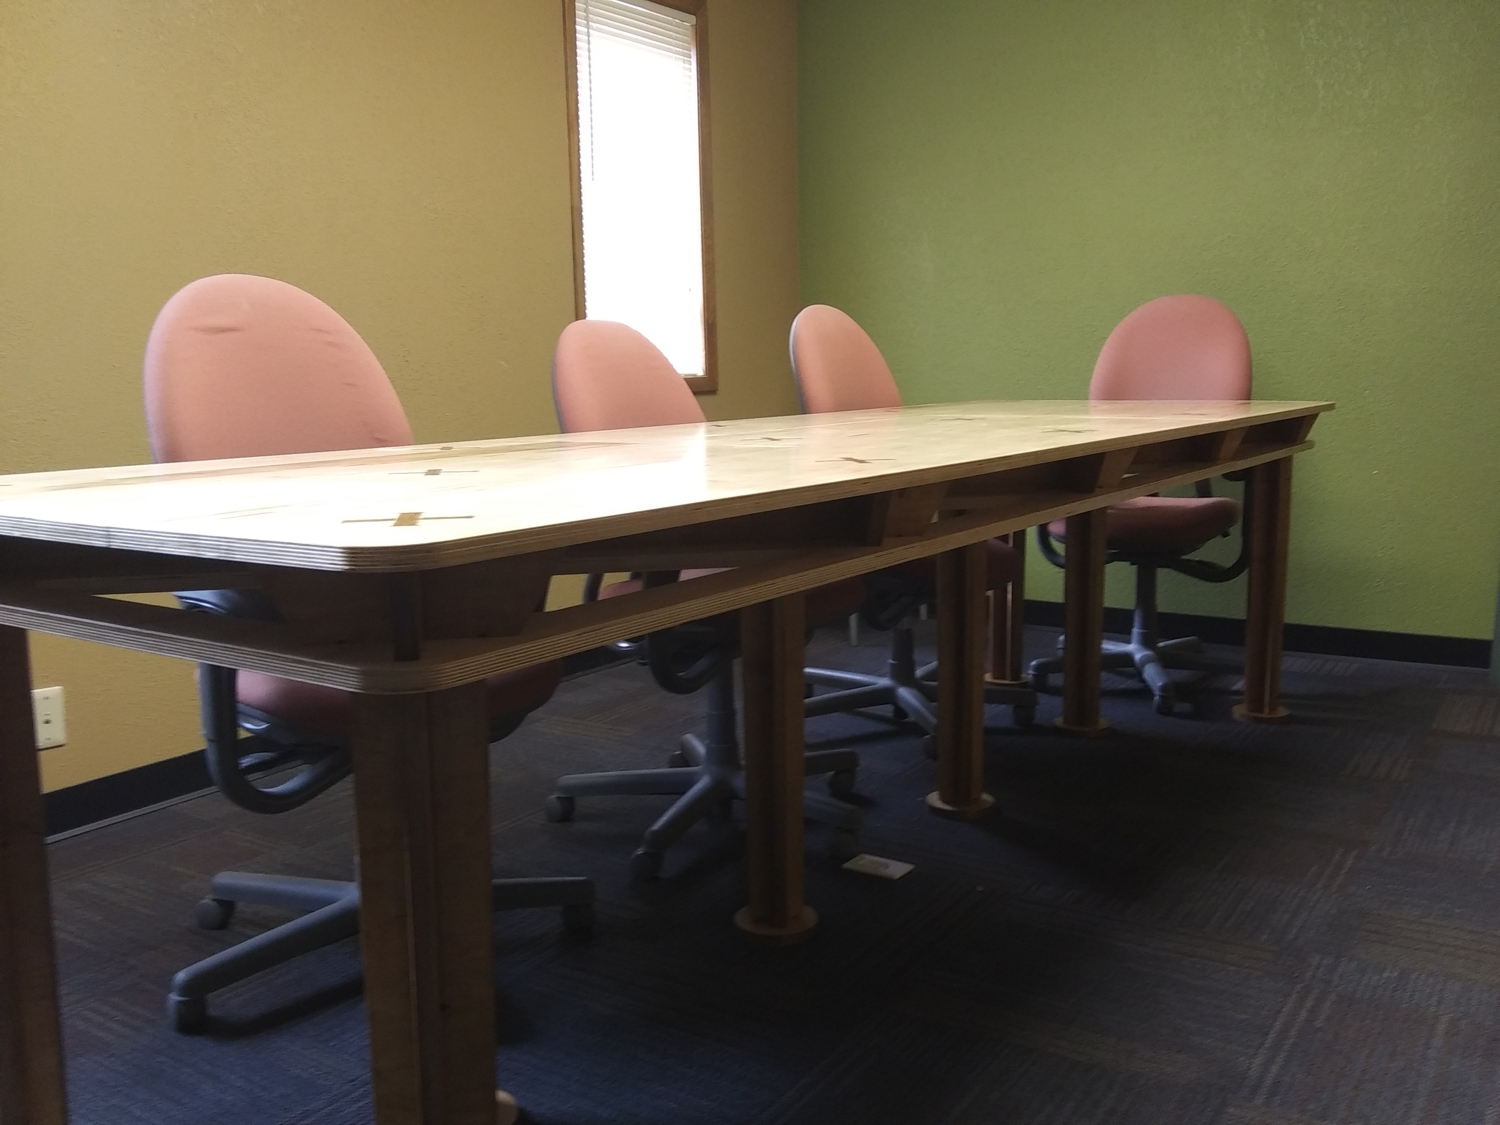 Laser Cut Conference Room Table 10x4ft DXF File